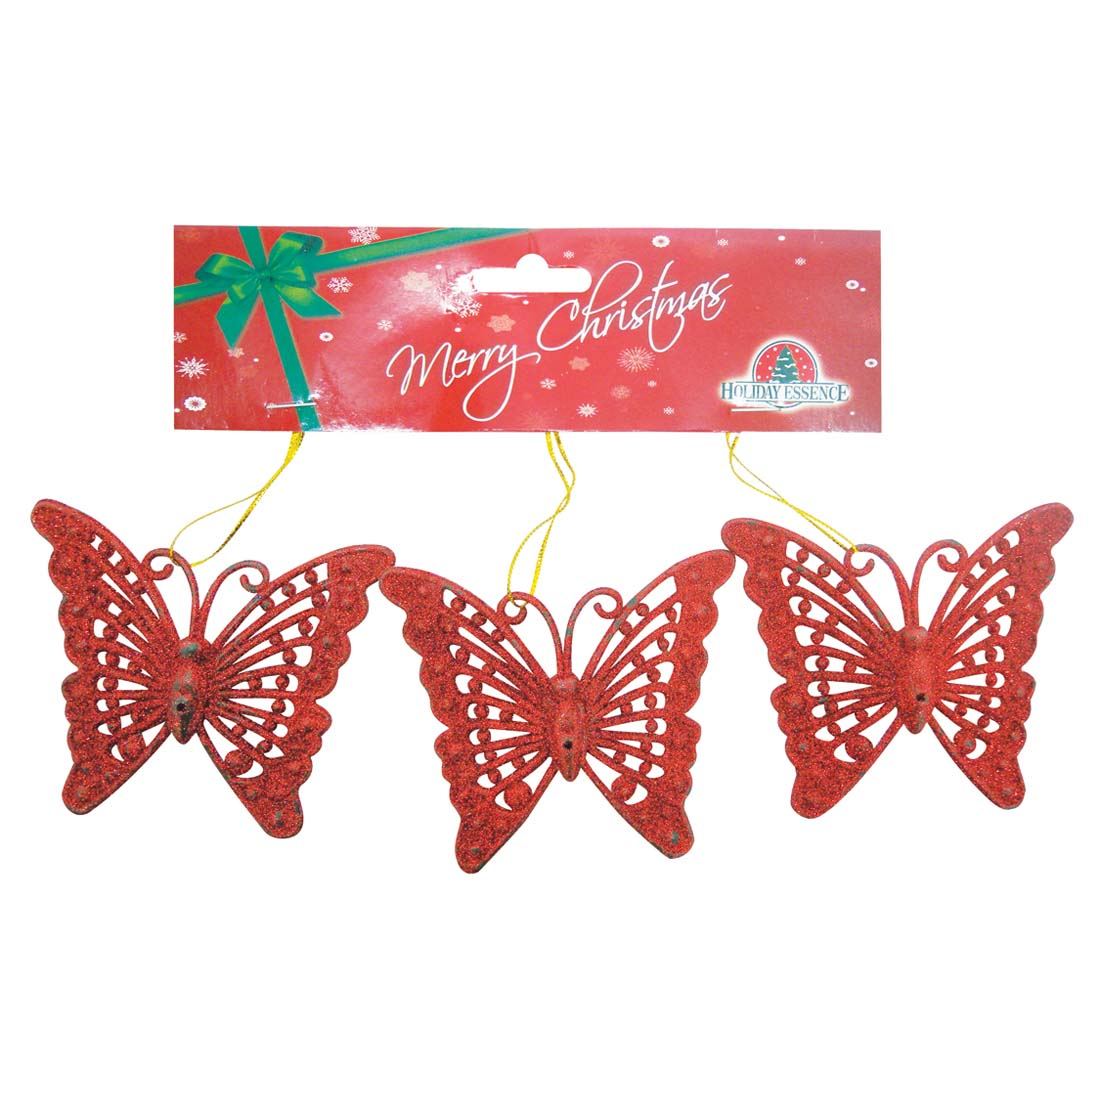 View CHRISTMAS ORNAMENT BUTTERFLY SHAPE 3 PK 2 INCH ASSORTED RED GREEN AND GOLD